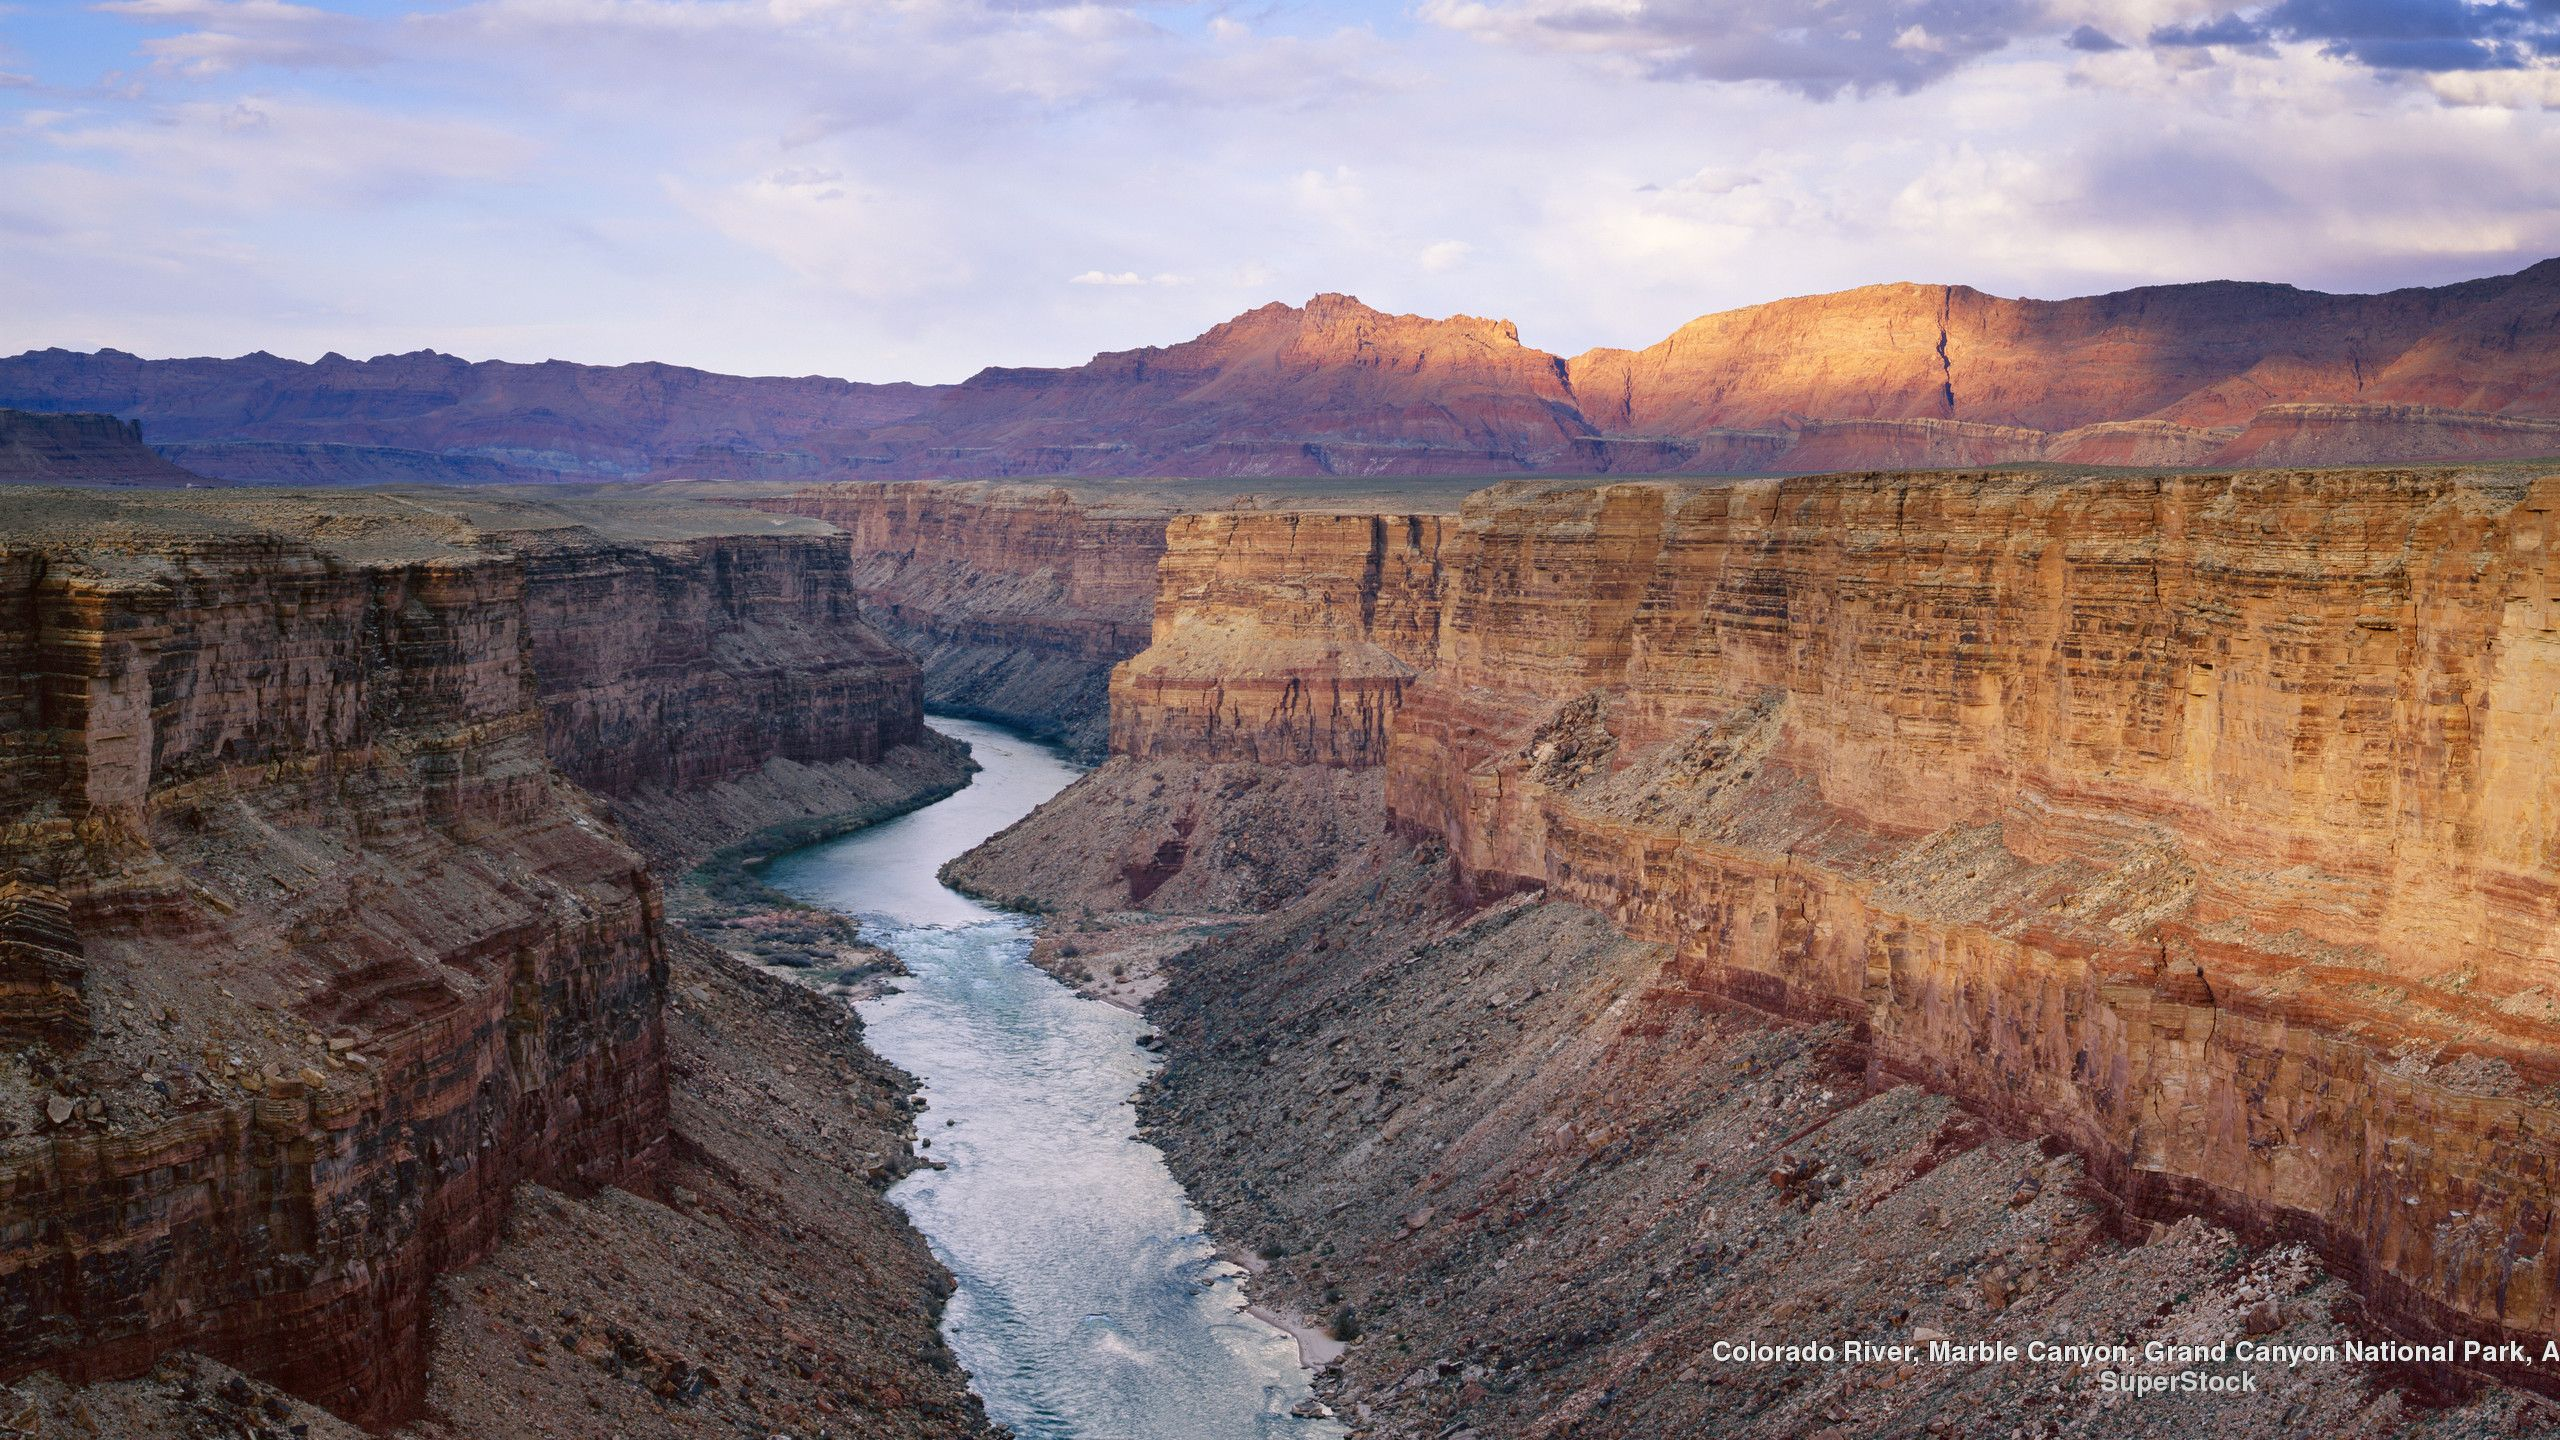 Must see Wallpaper Mac Grand Canyon - 7bd6819d789d3f3297c9c36ef83cef8c  Collection_43223.jpg